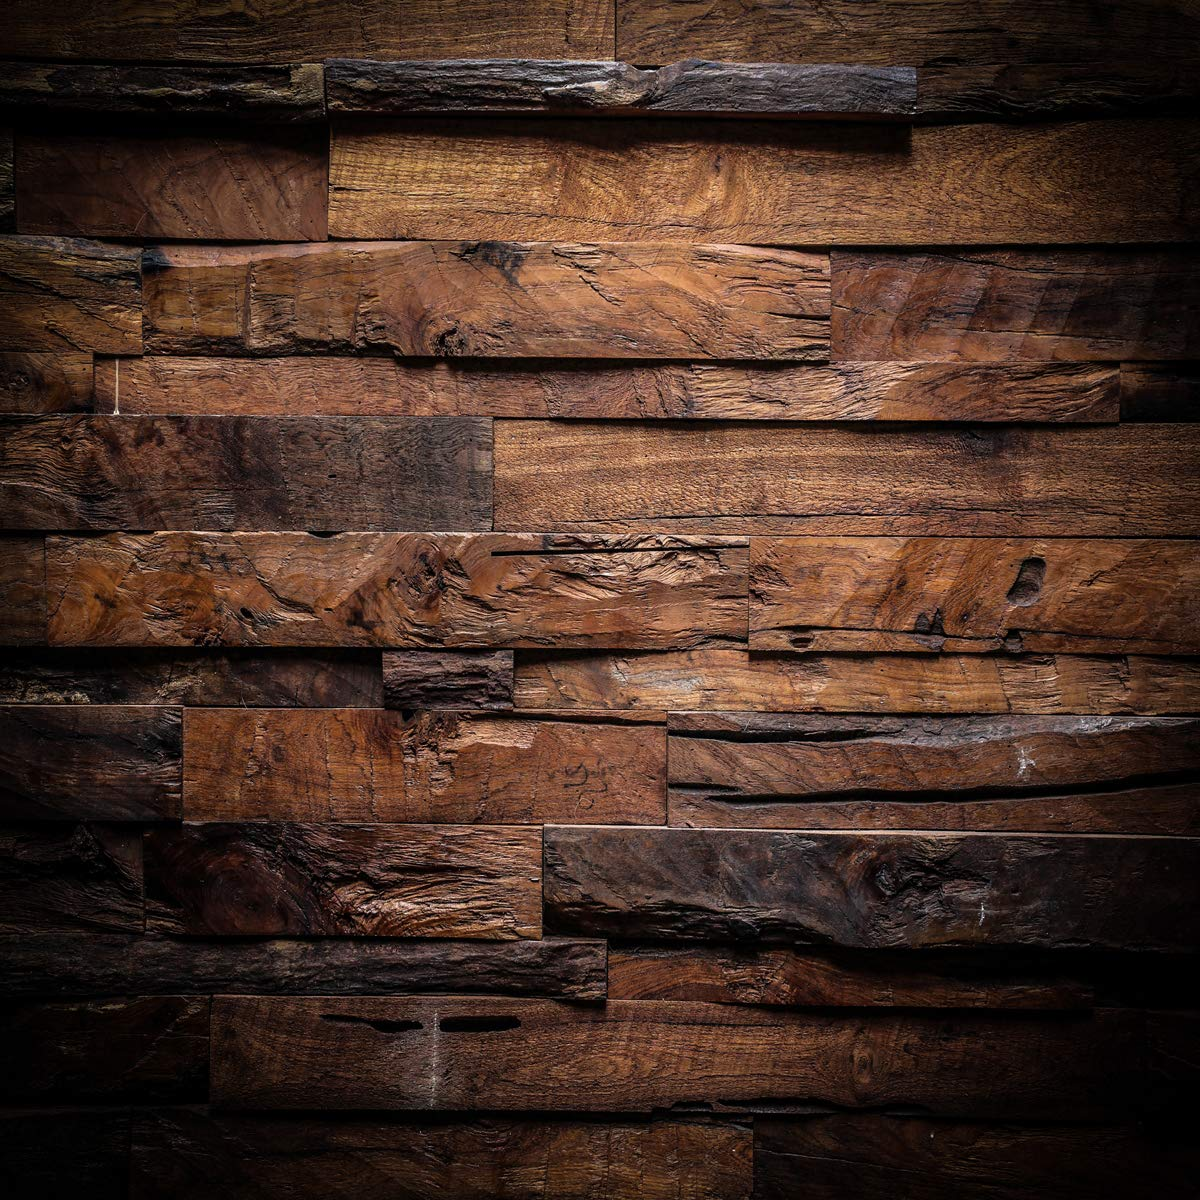 CYLYH 10x10ft Photography Backdrop Brown Wood 3D Backdrops for Picture Customized Vinyl Photo Background D104 by CYLYH (Image #1)